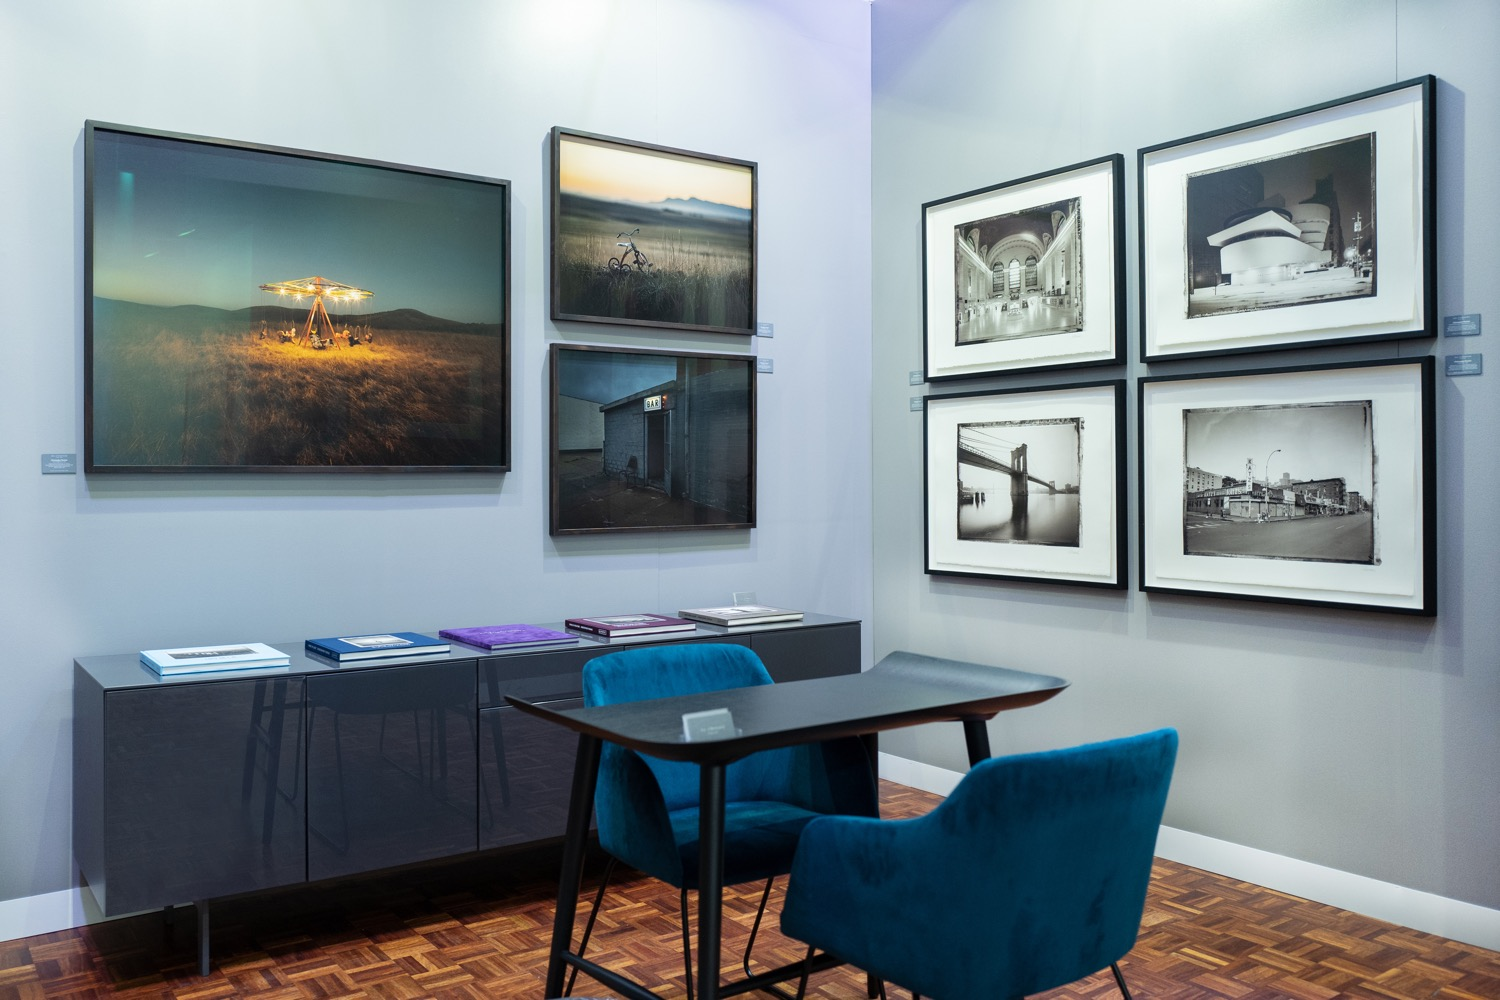 Salon photo  photo basel Premire foire internationale dart en suisse ddie  la photographie